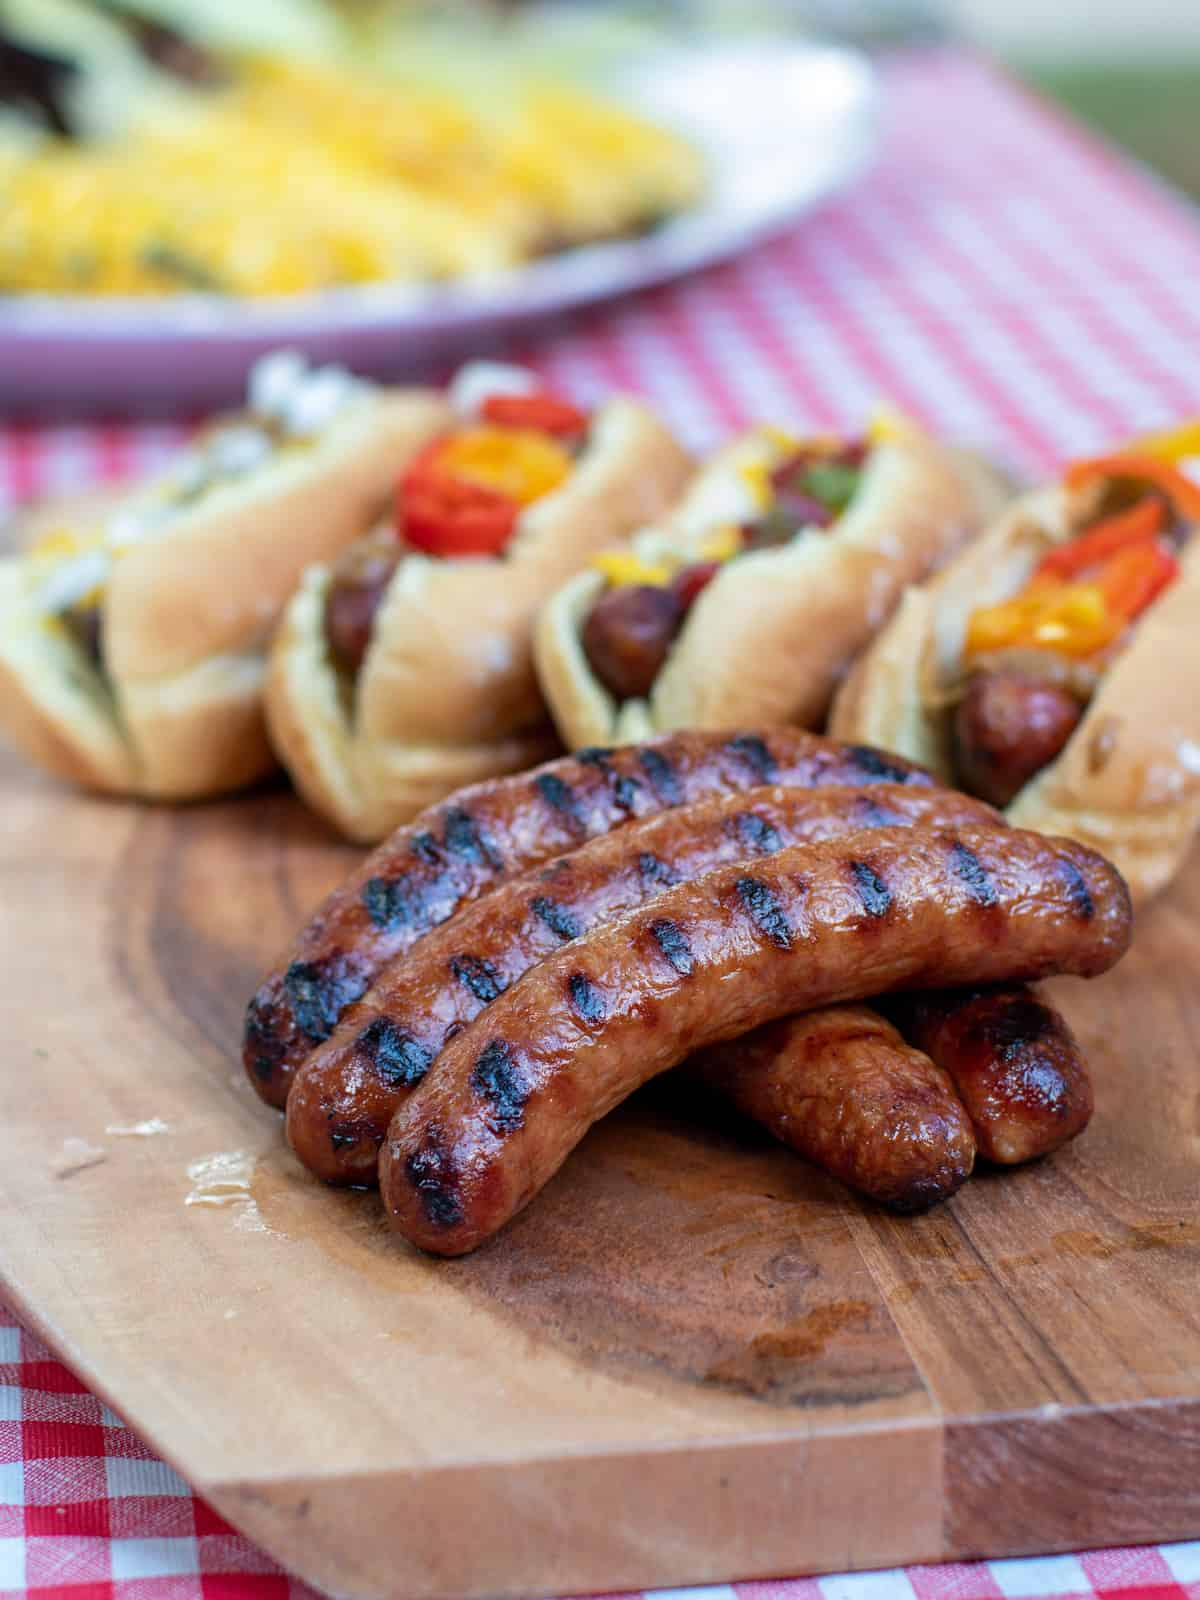 A picnic with sausages on a bun and corn on the cob.